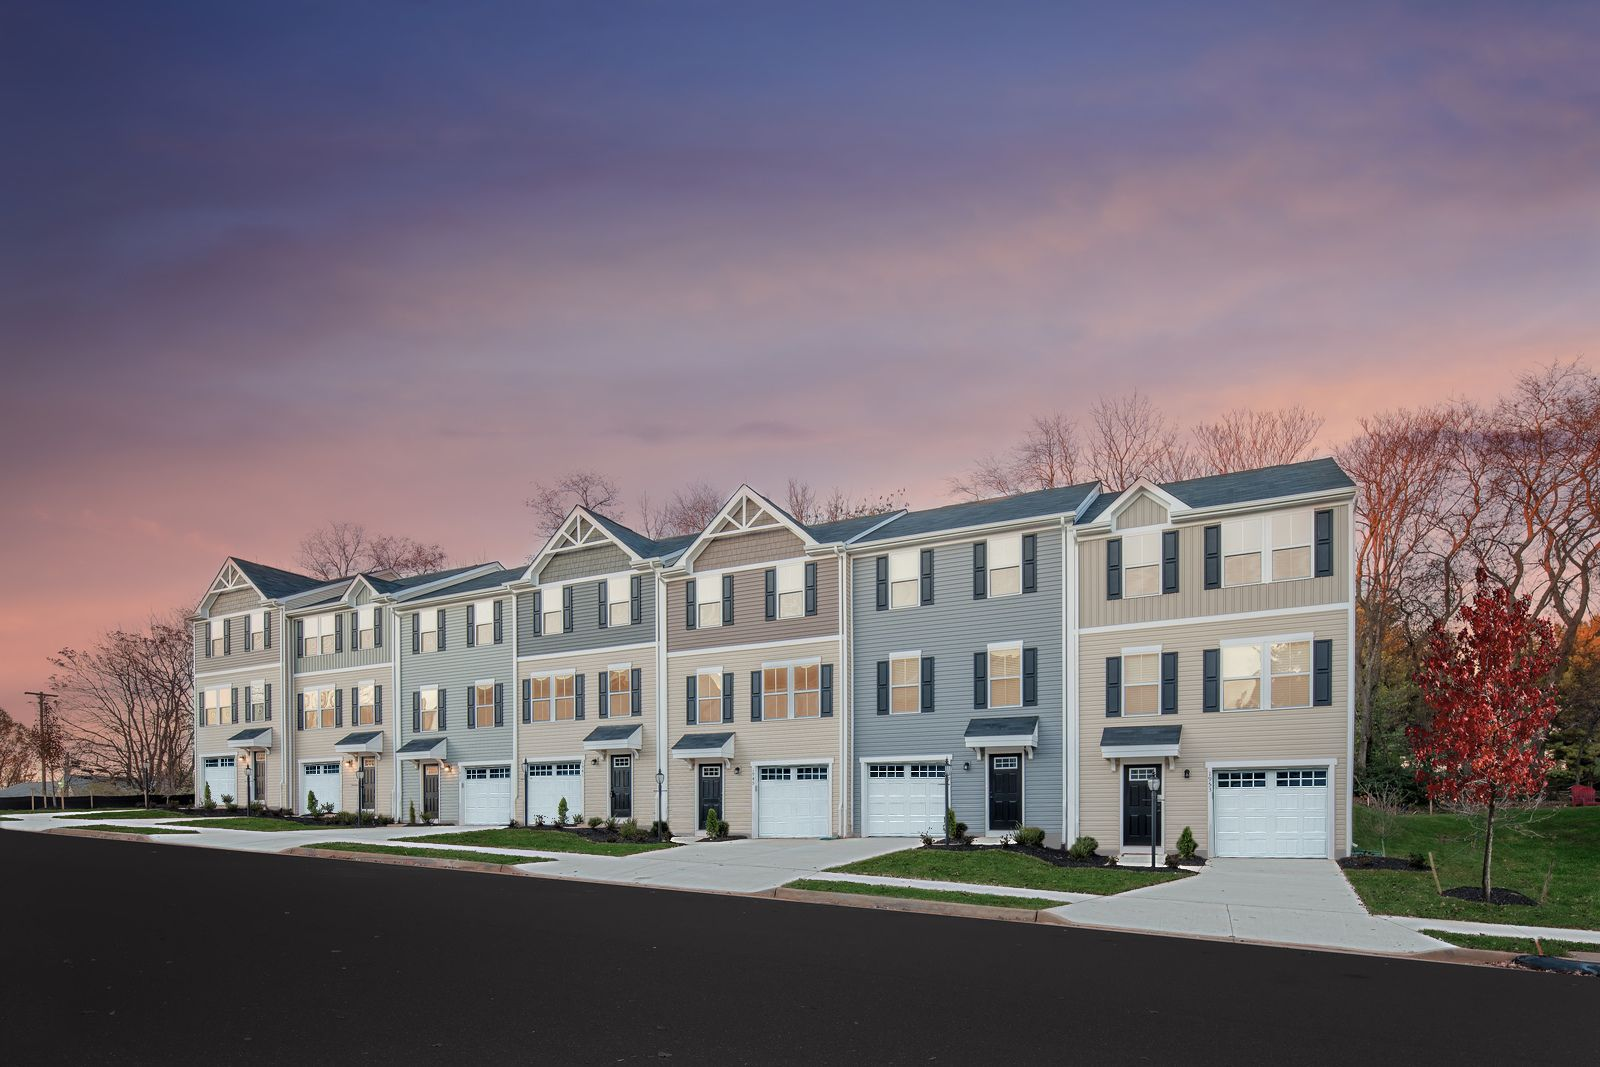 Experience the pride of homeownership in Foxhill Townes:Own a new 1-car garage Townhome w/ your own private yard. Enjoy living near Langley and Norfolk Naval. Schedule a visit todayto see!